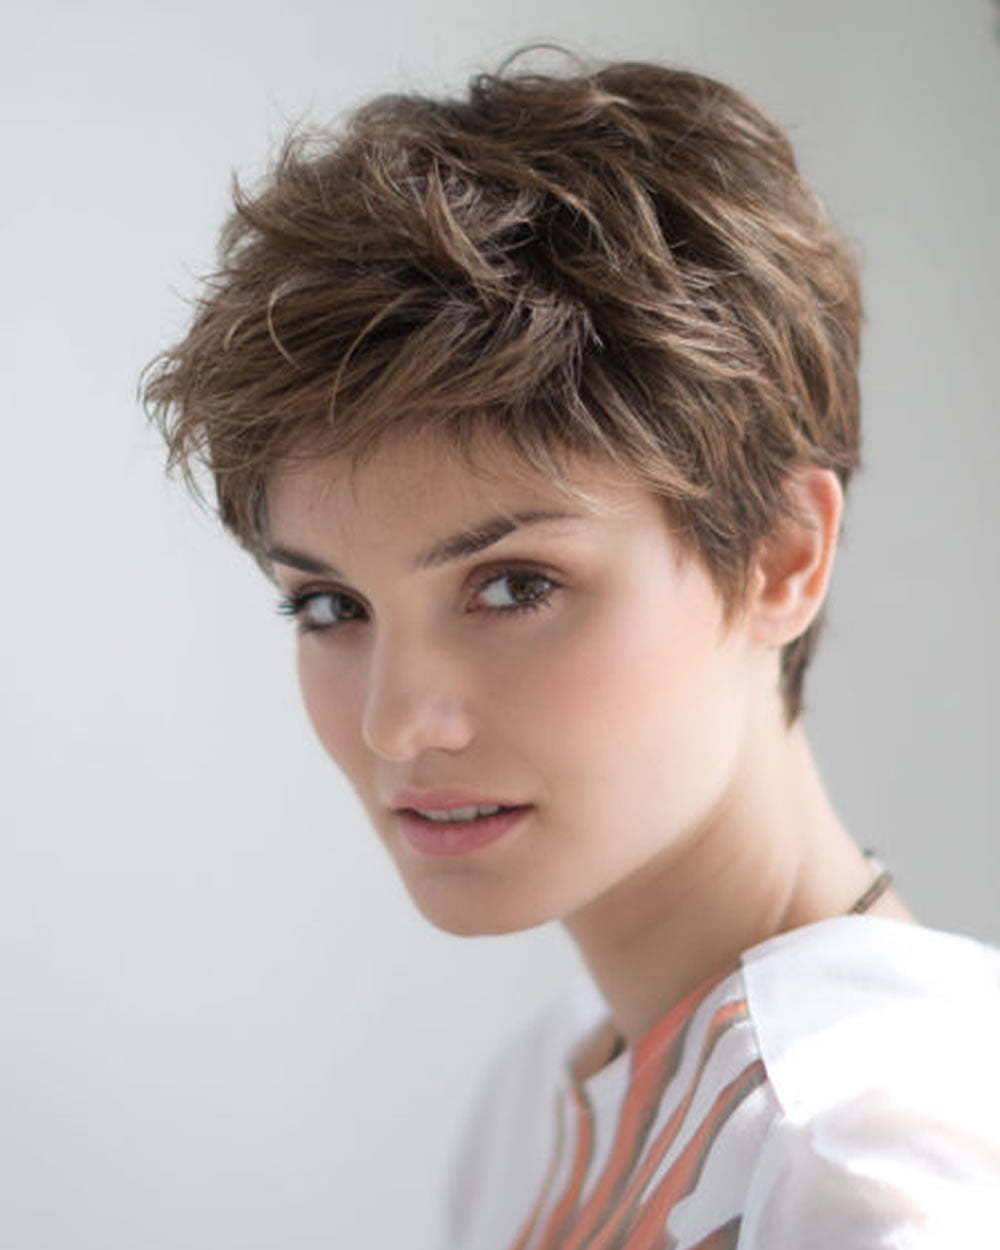 Trendy Short Haircut Images And Pixie Hairstyles For 2018 2019 Hair